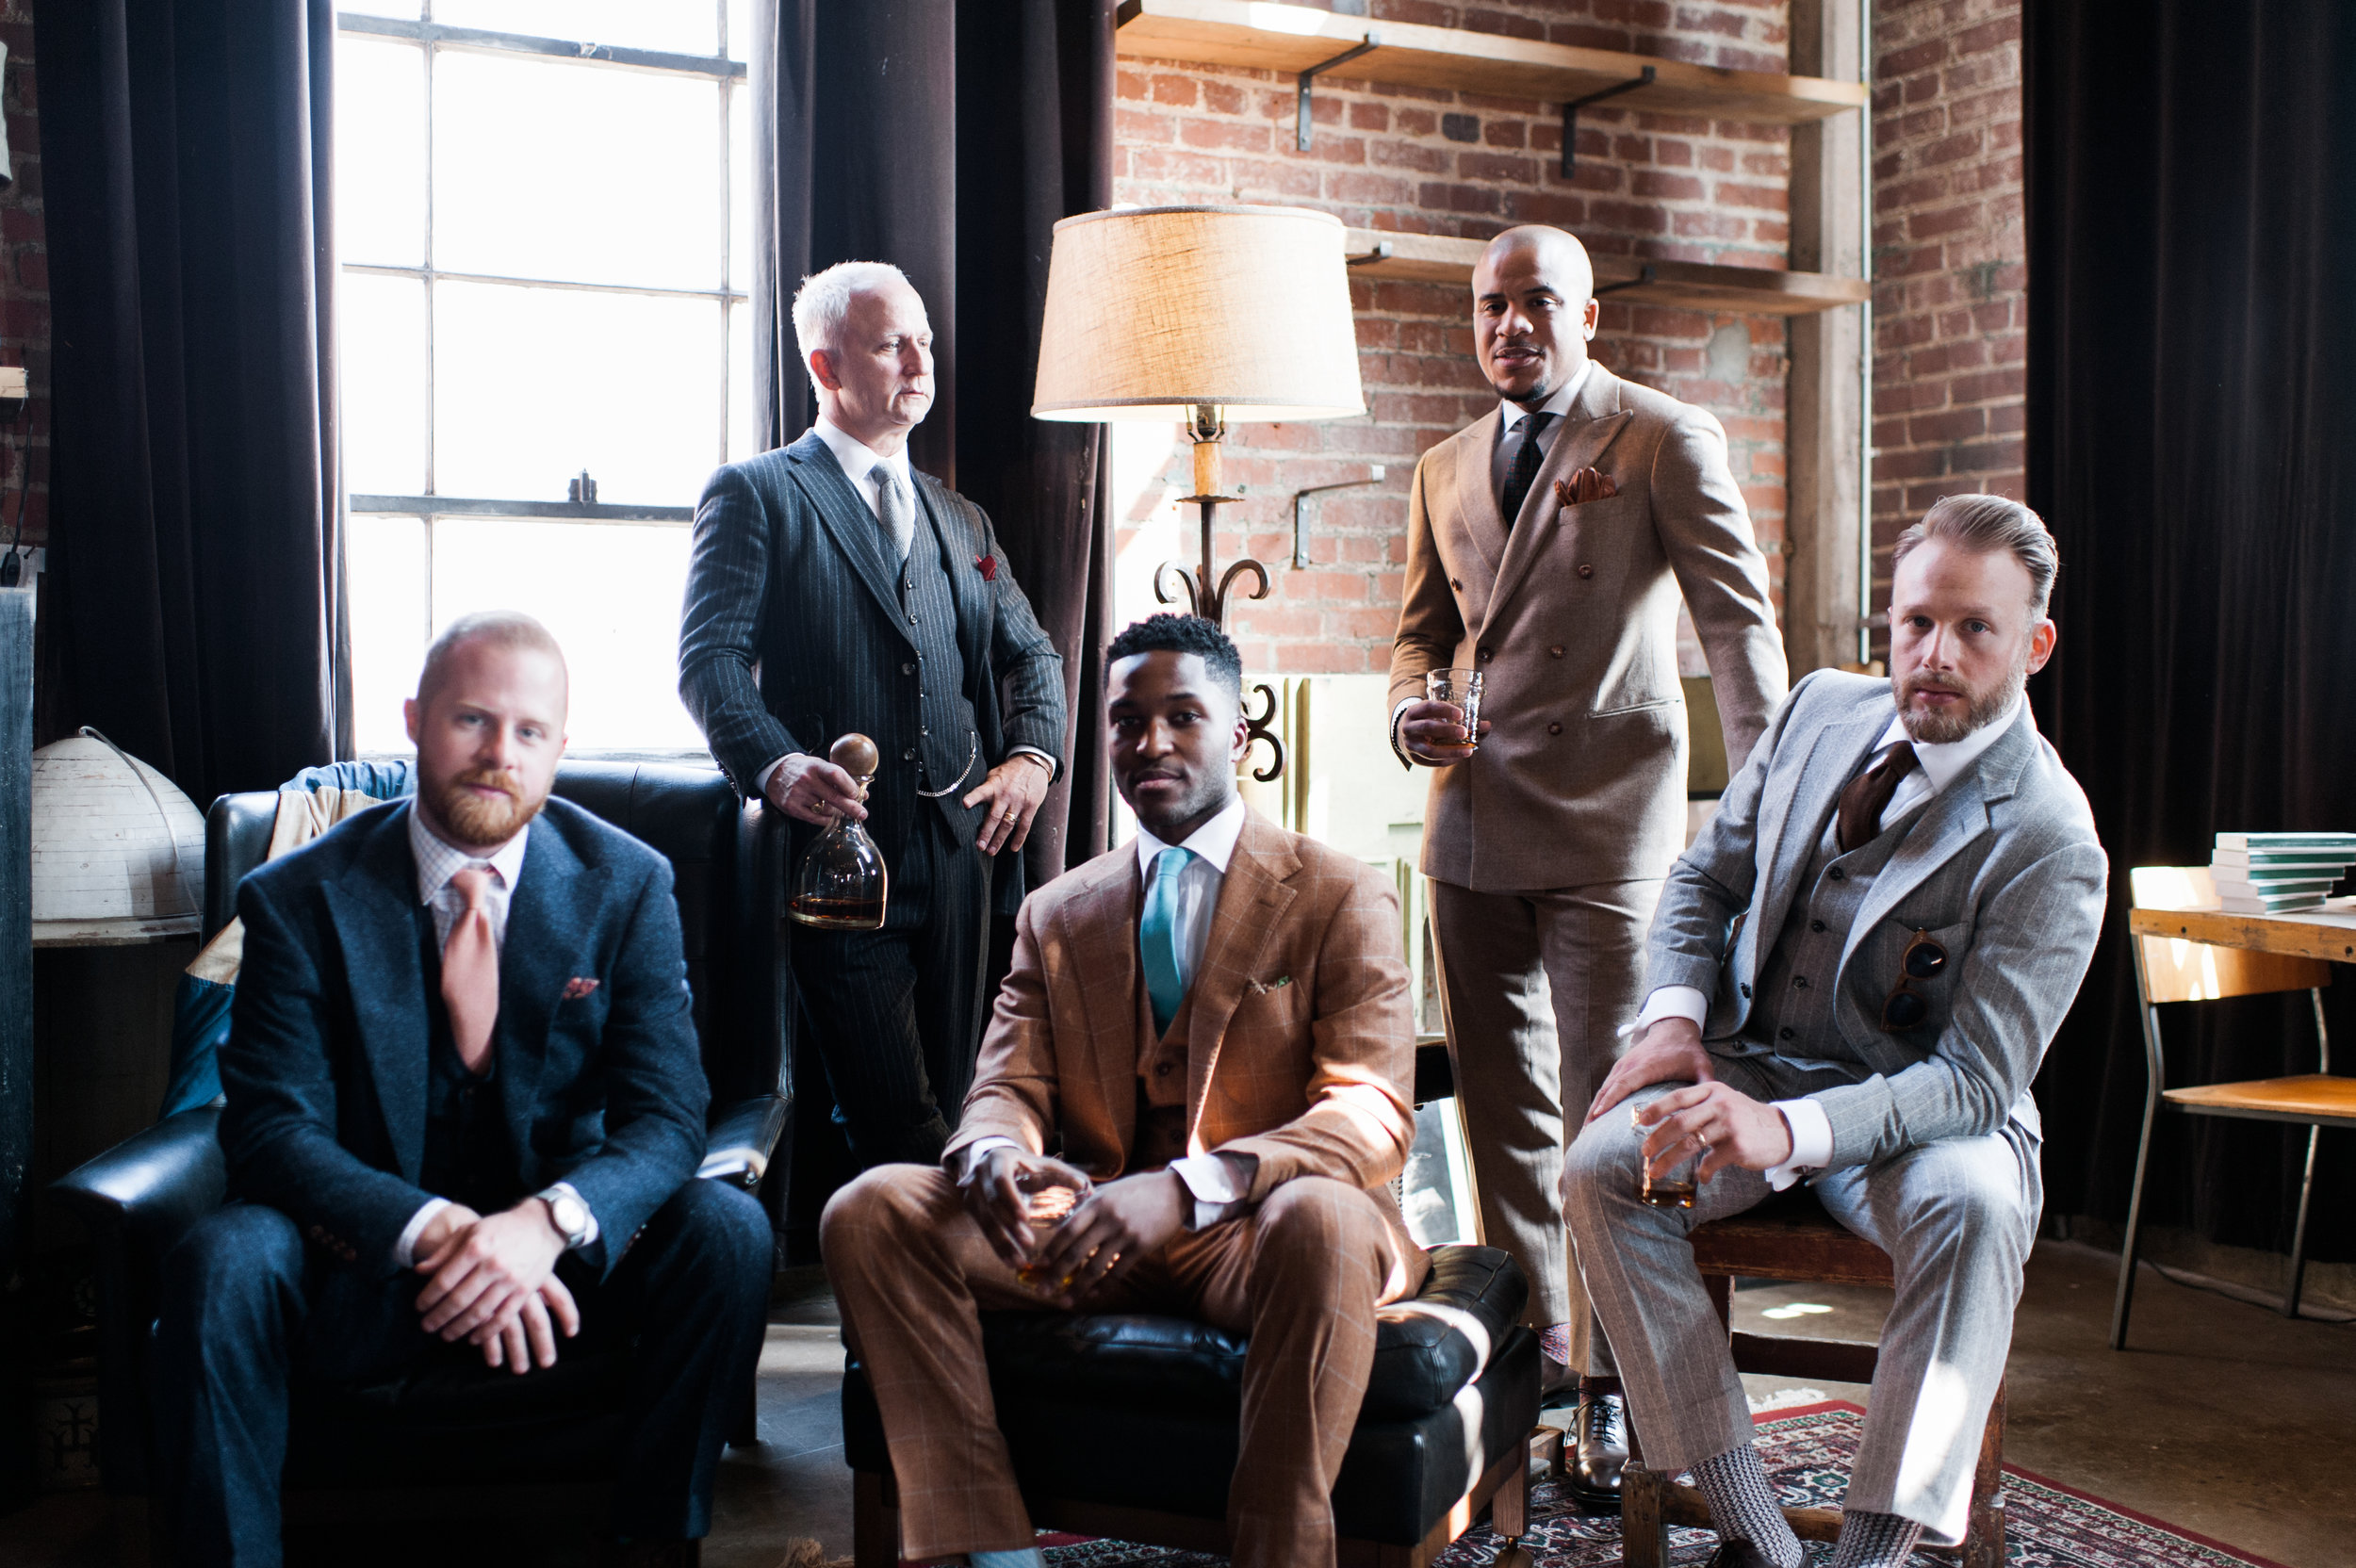 Stitch it & Co custom suits in Nashville at Peter Nappi